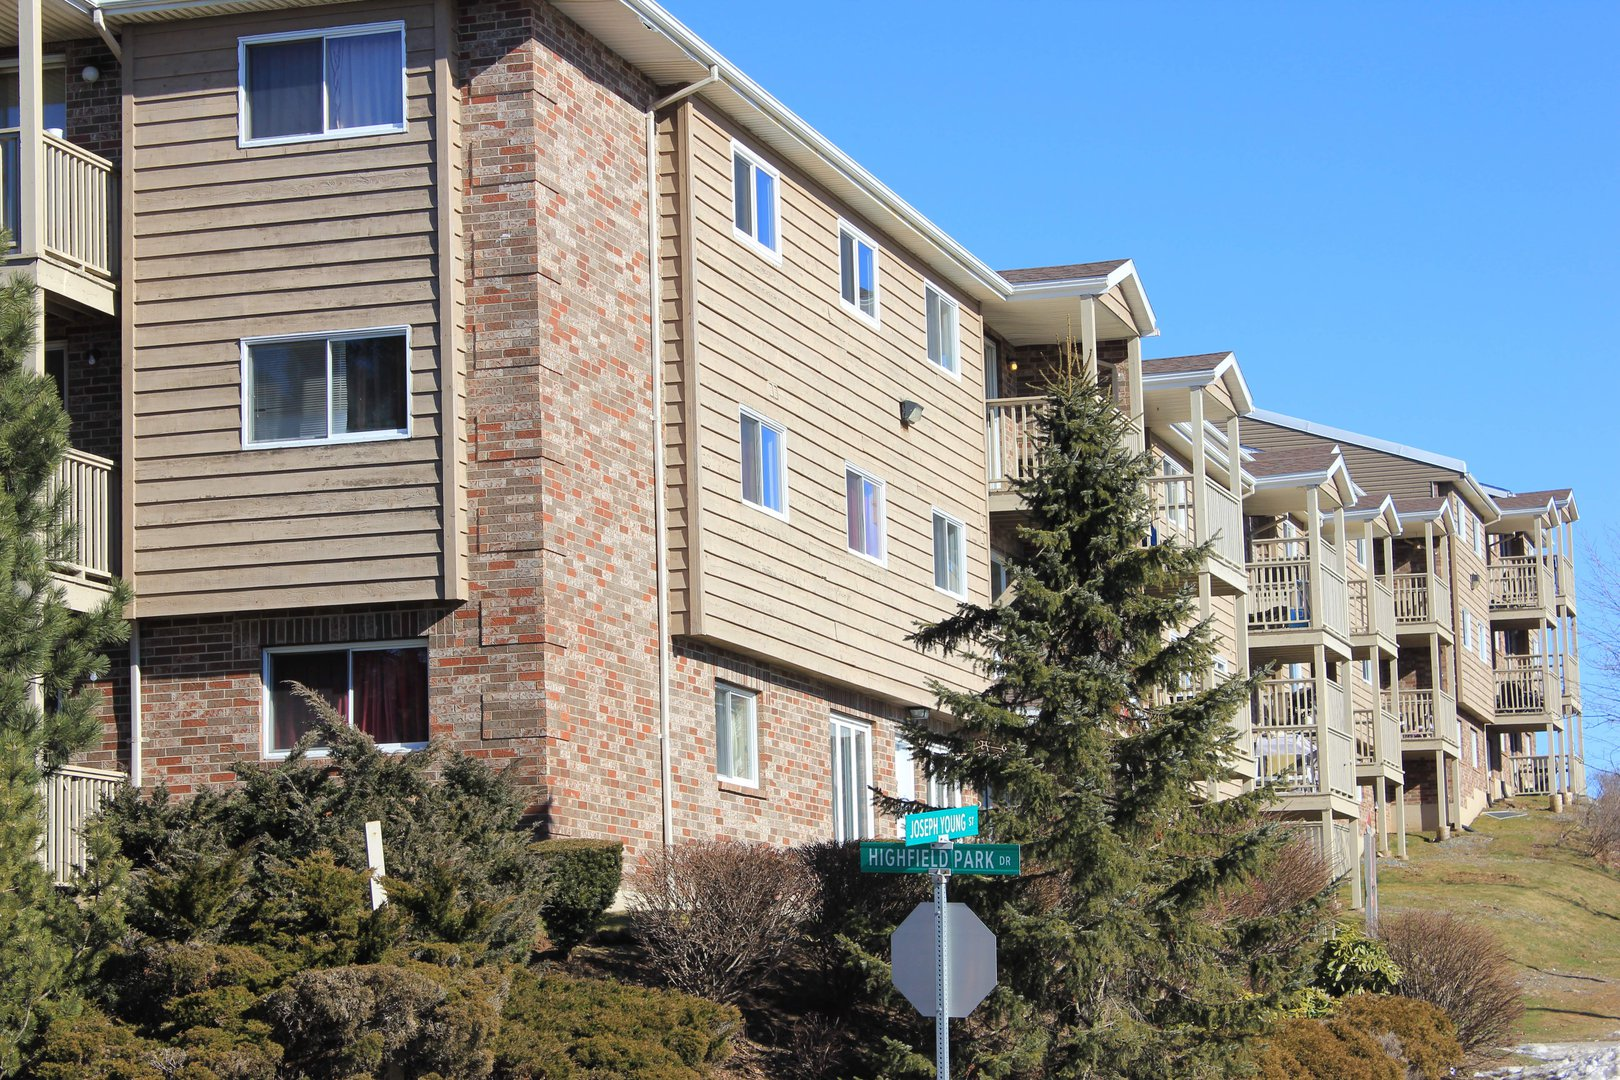 Apartment for rent at 96 Highfield Park Drive B, Dartmouth, NS. This is the outdoor building with lawn.